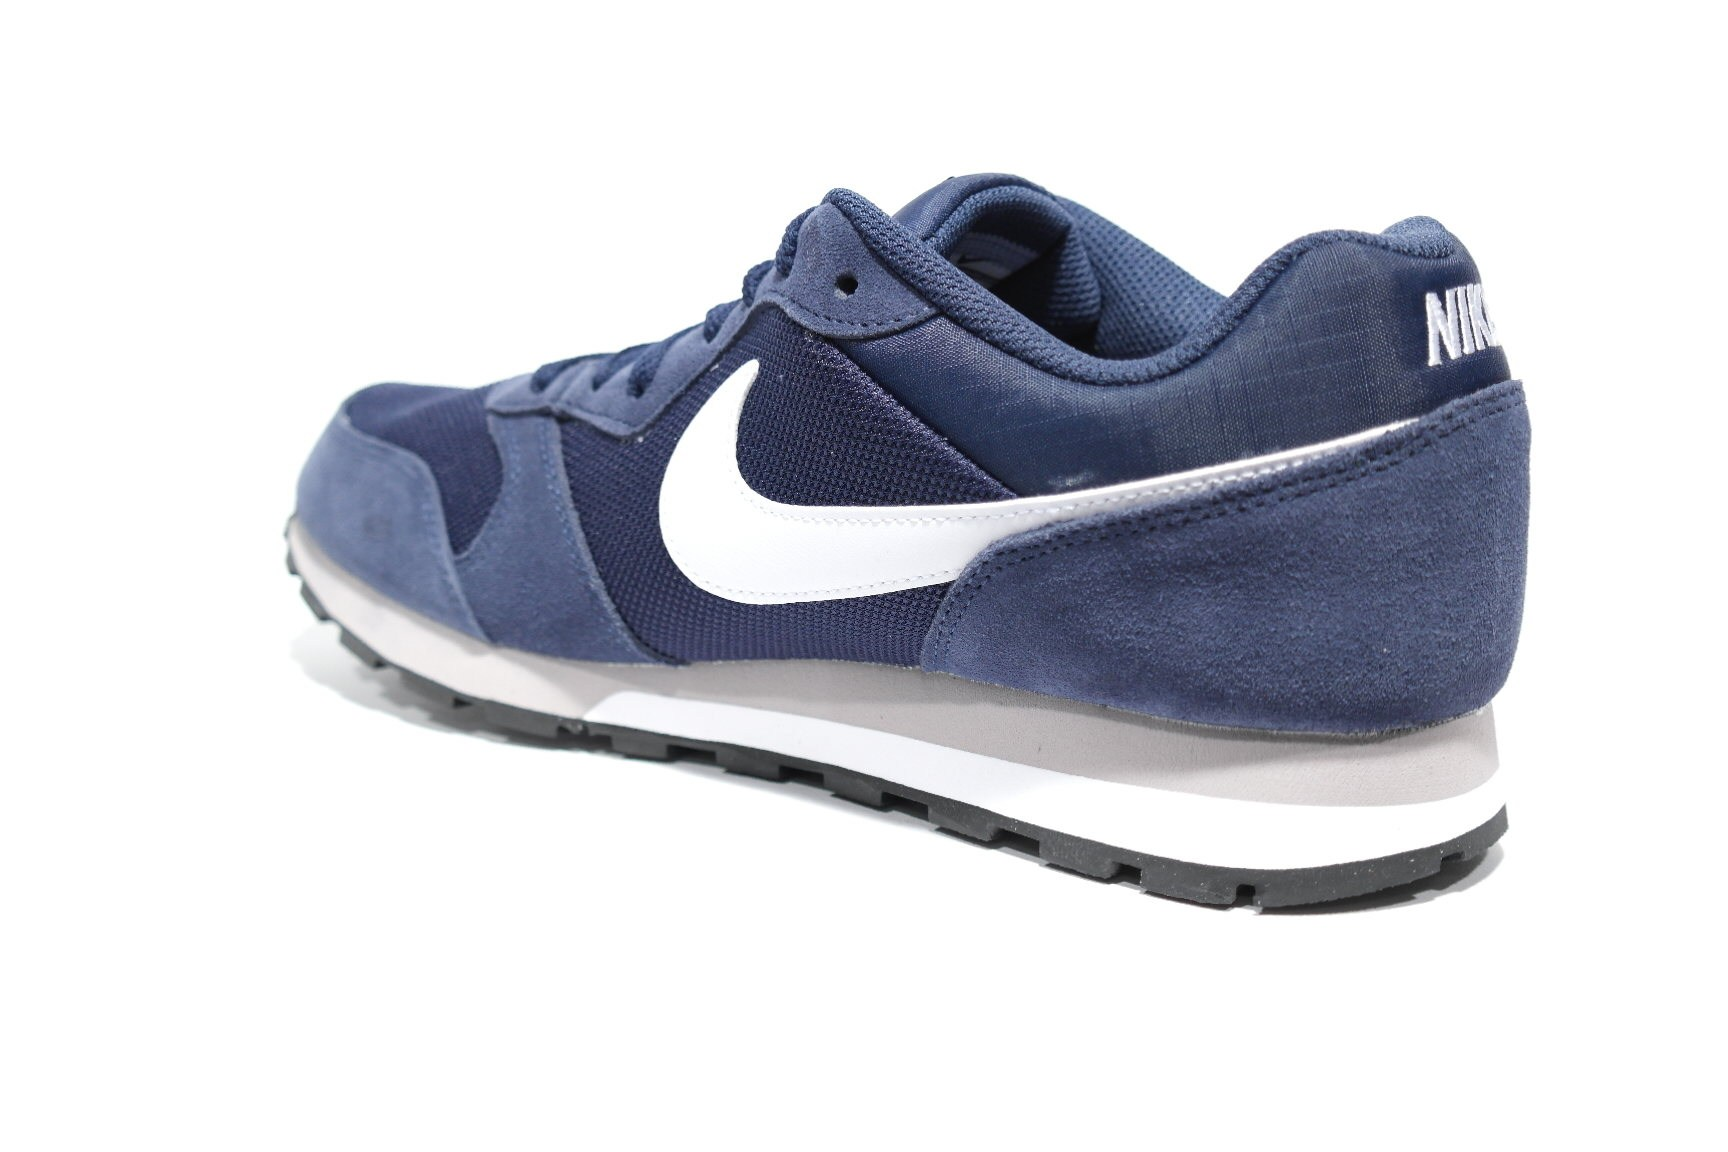 best website b5081 d77ea ... Nike Md runner 2 heren sneakers marine ...